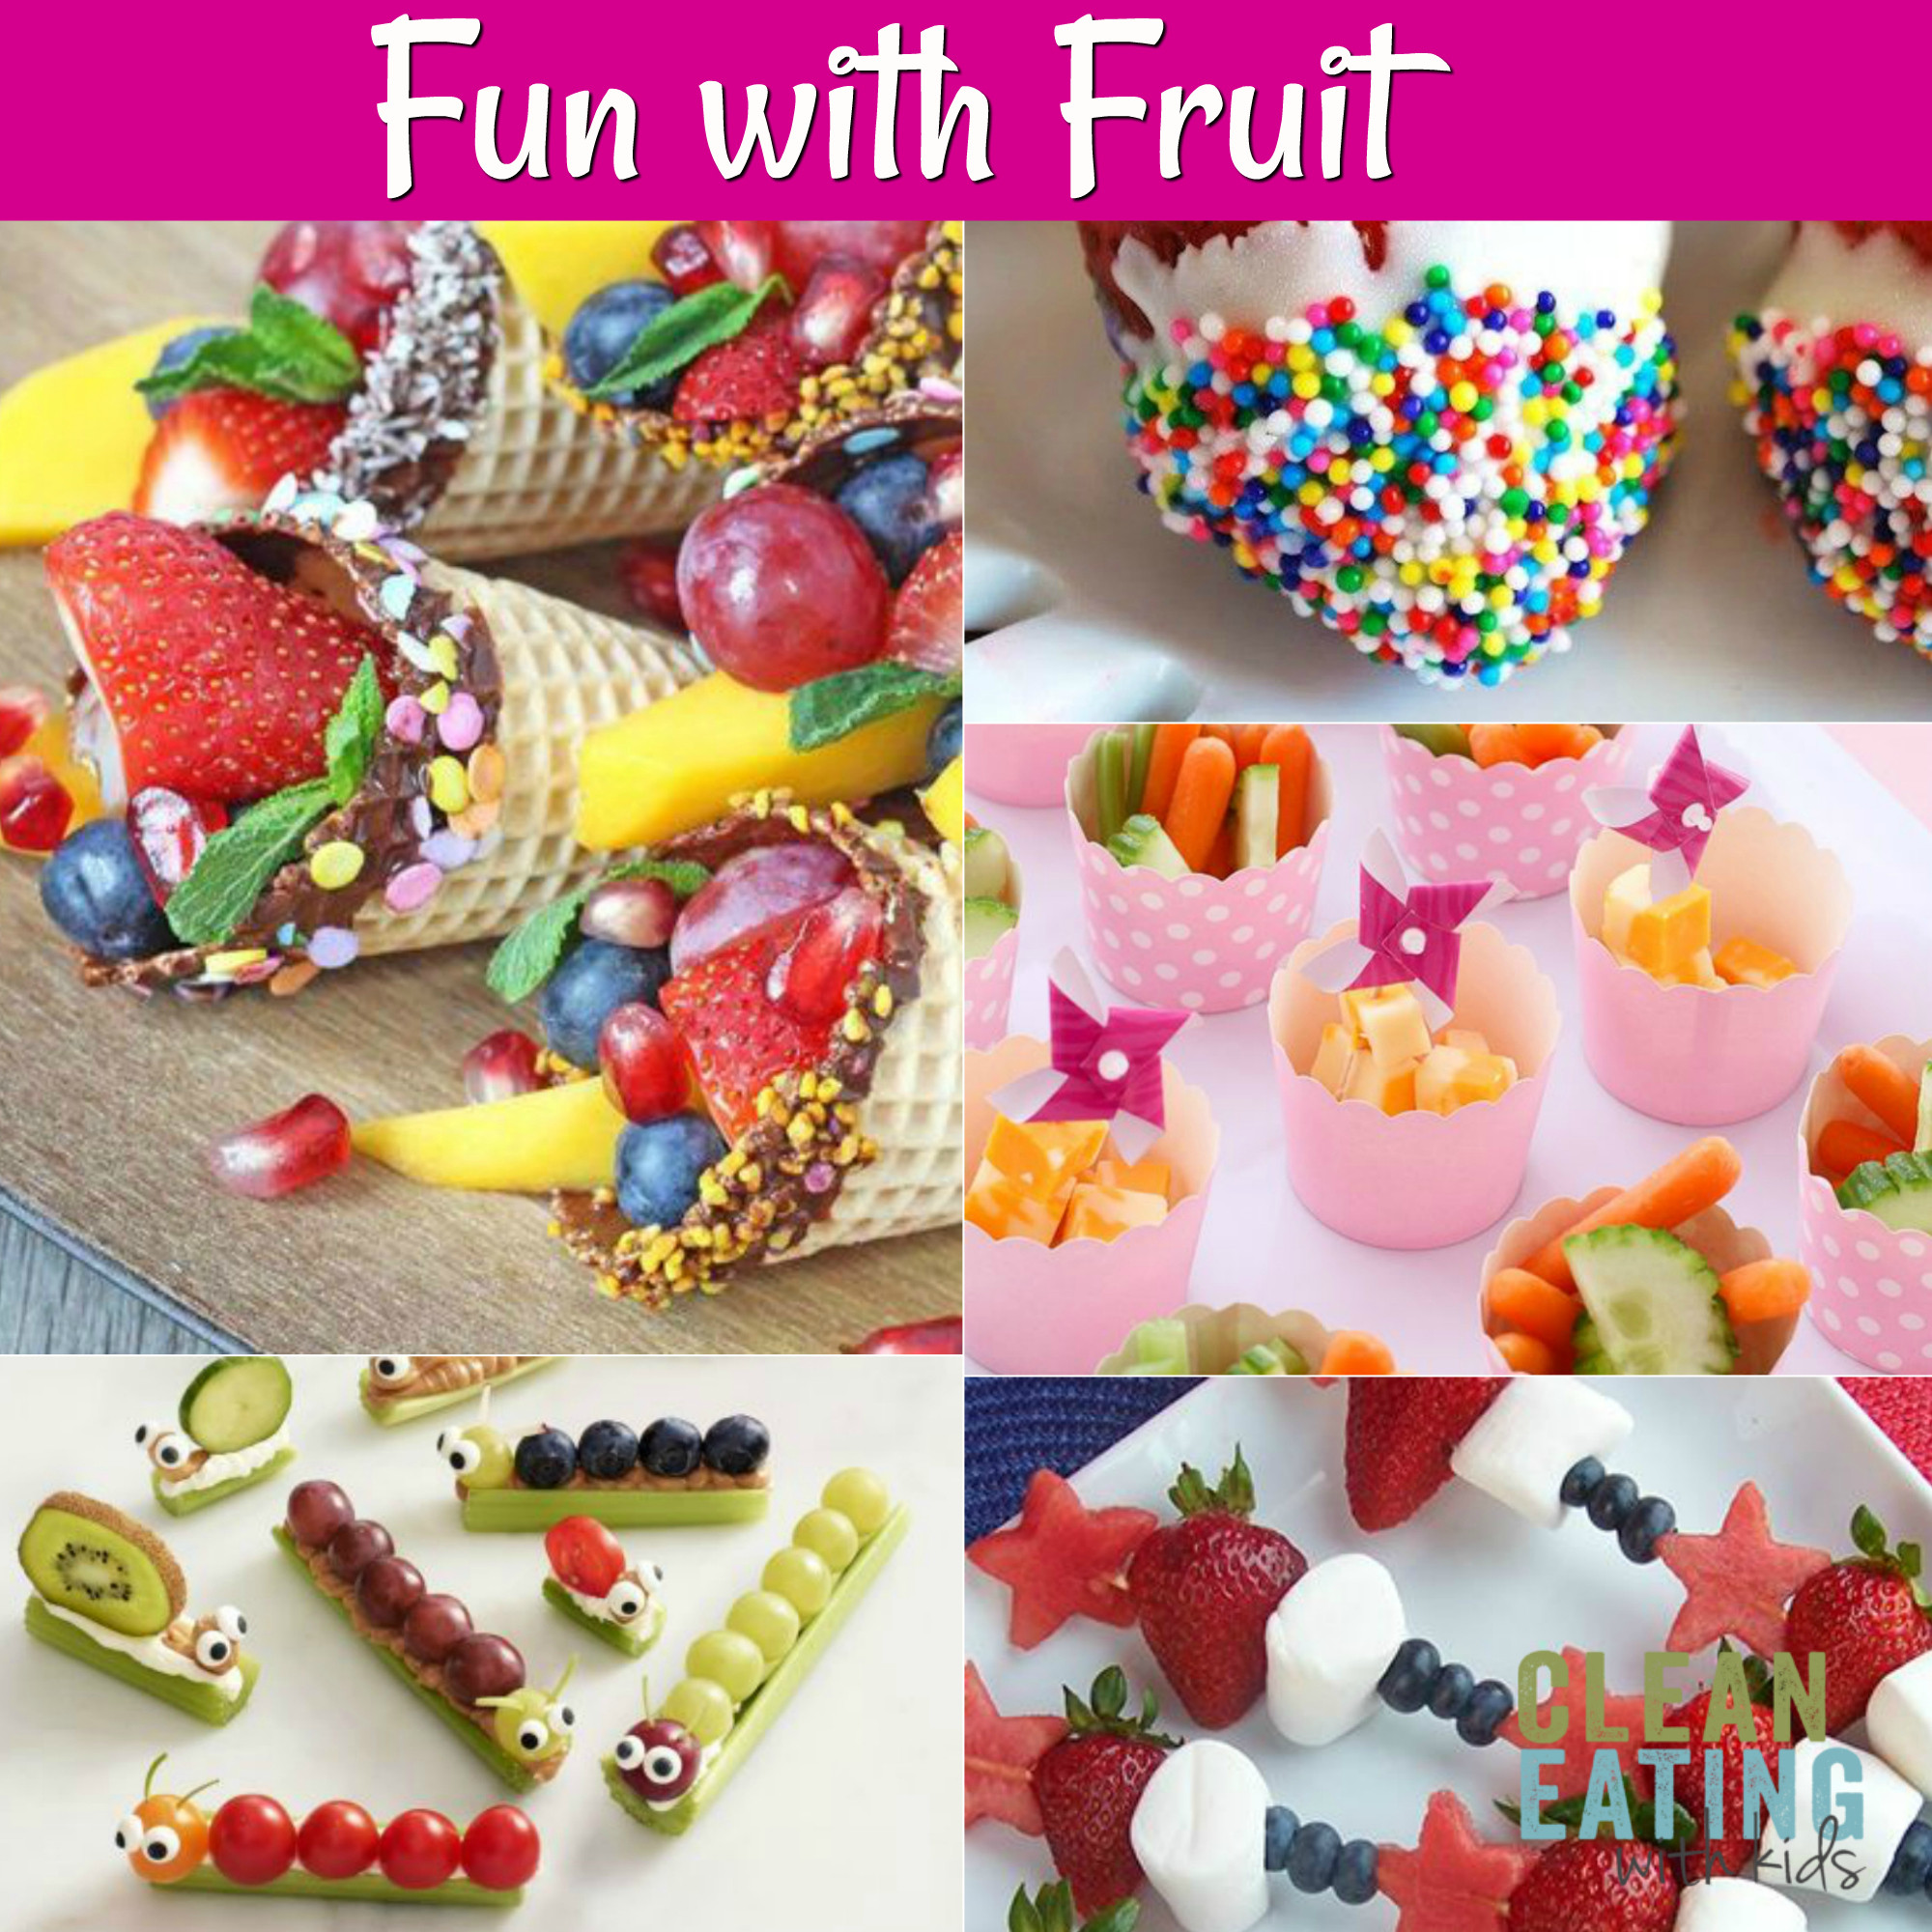 Party Food Ideas For Kids  25 Healthy Birthday Party Food Ideas Clean Eating with kids